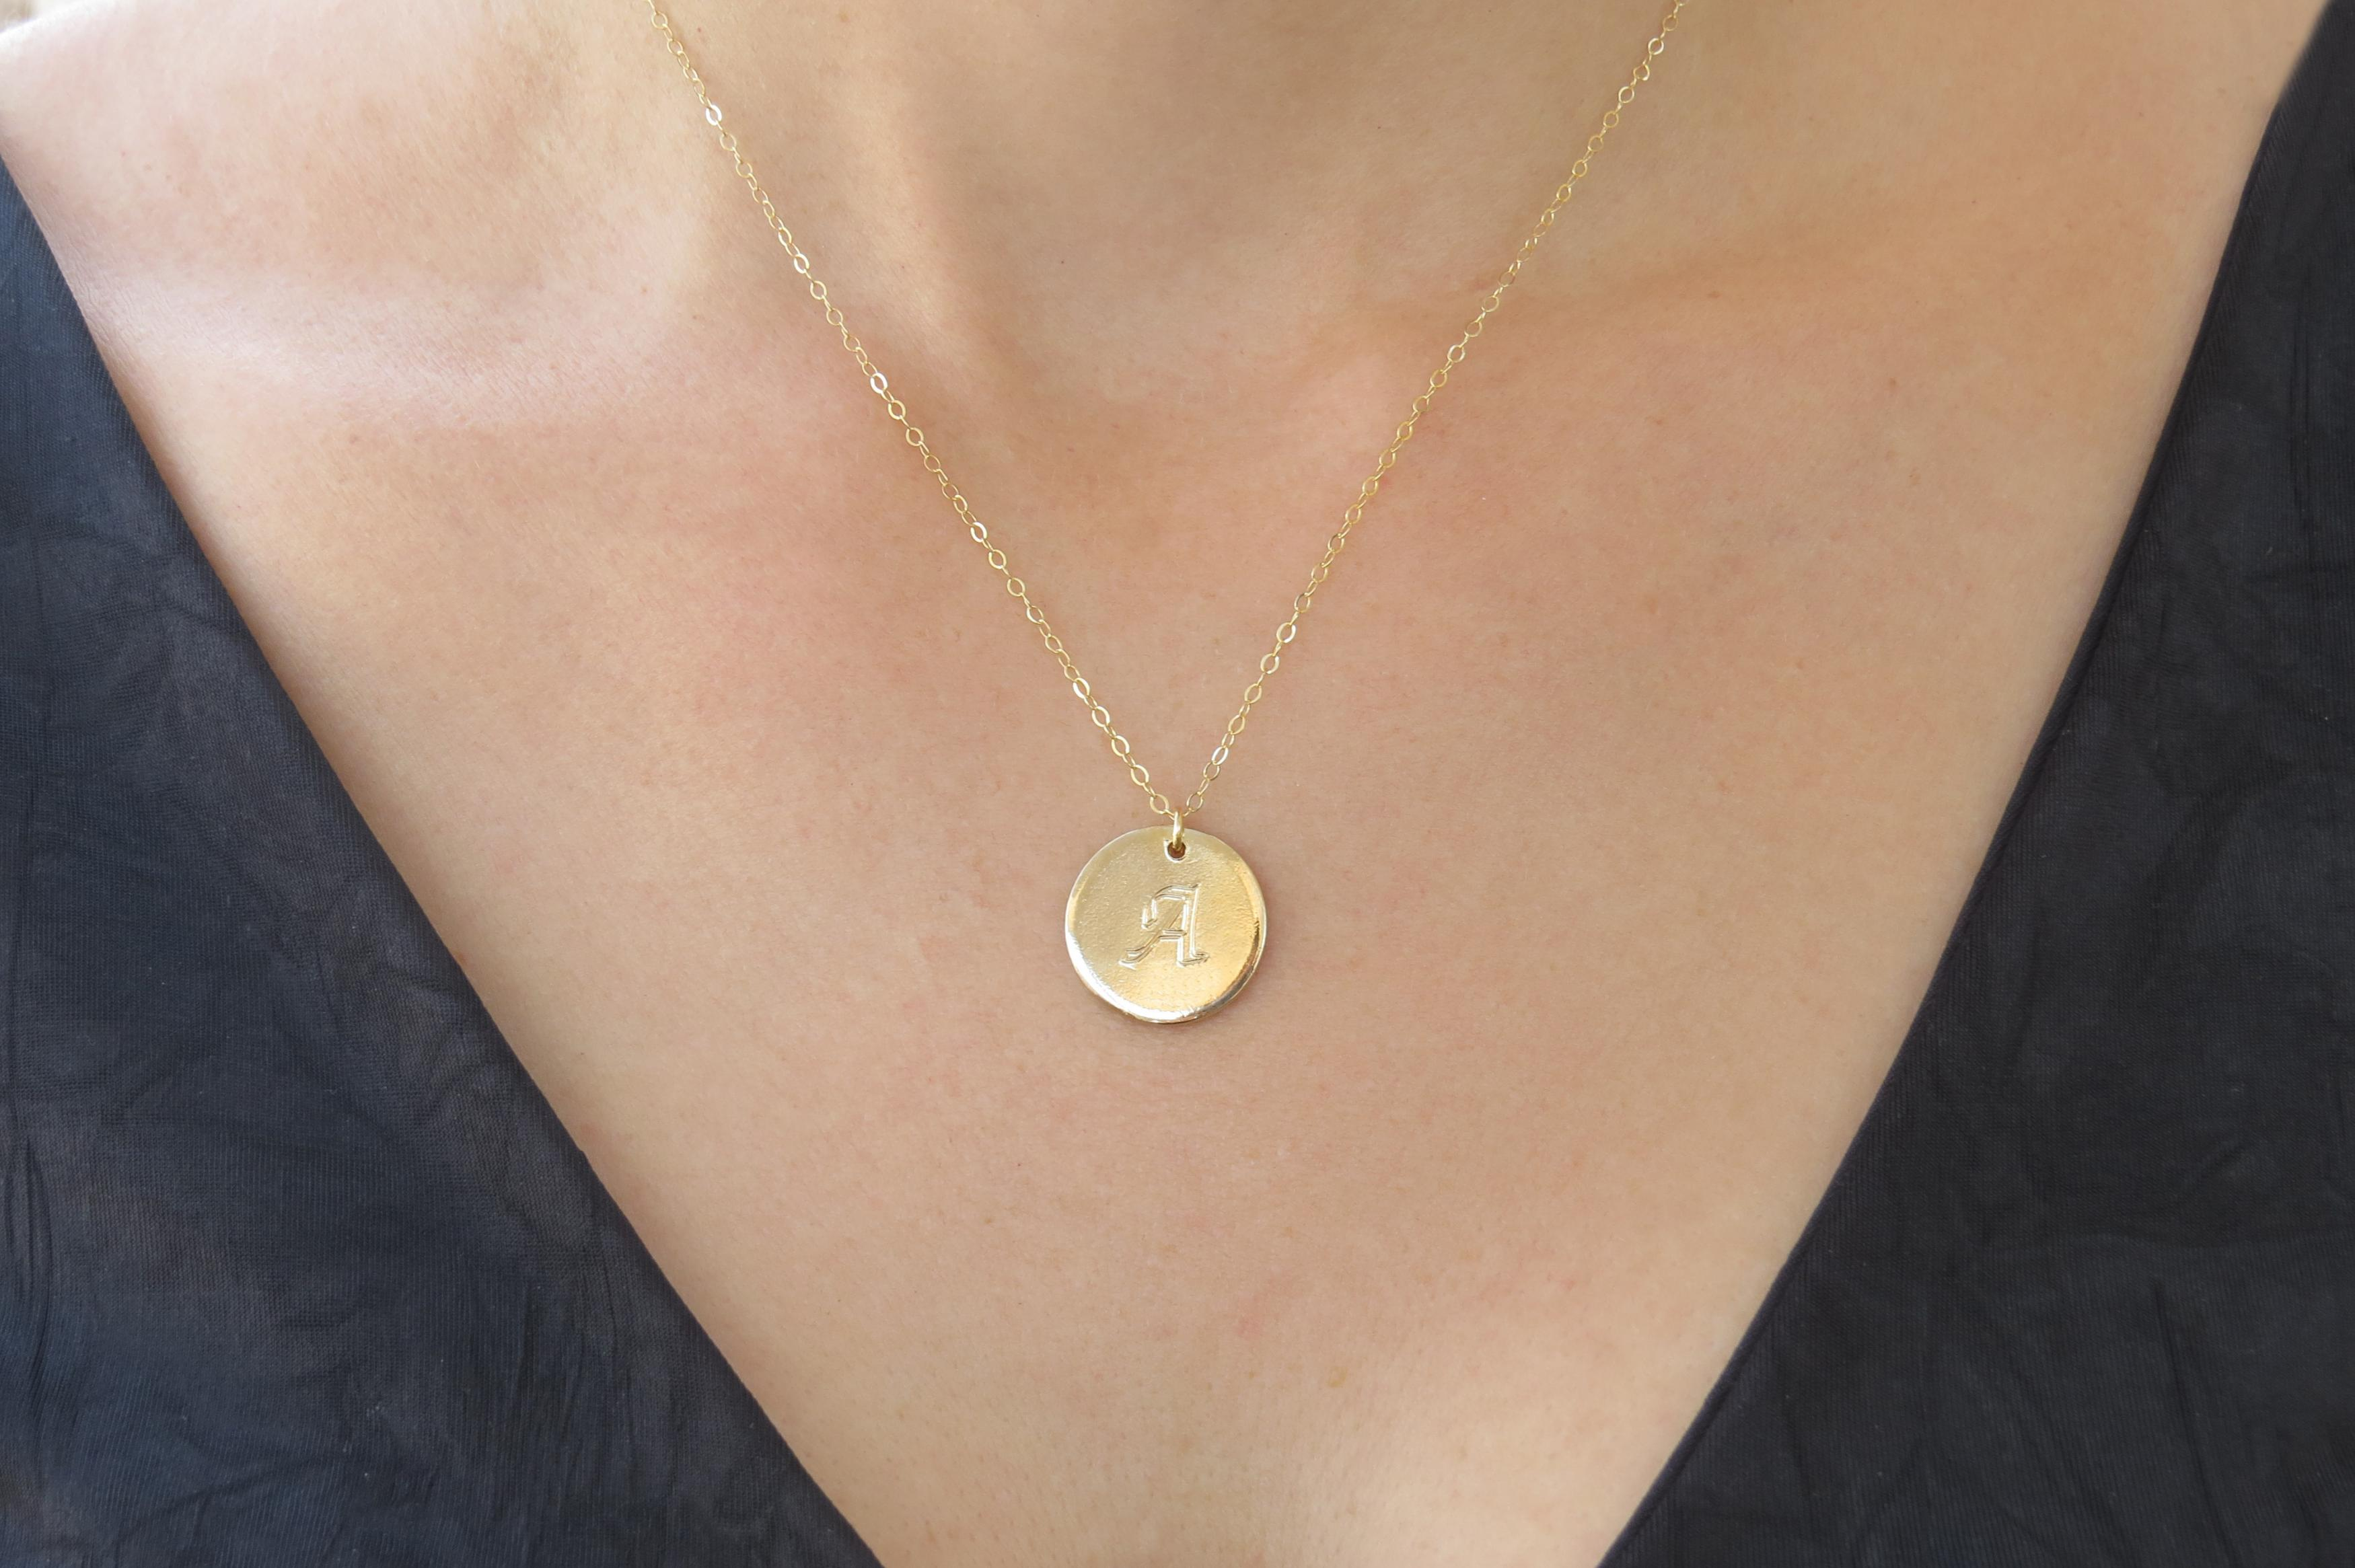 Initial necklace gold necklace letter necklace gold disc initial necklace gold necklace letter necklace gold disc necklace bridesmaid gift initial charm gold jewelry personalized necklace mozeypictures Choice Image